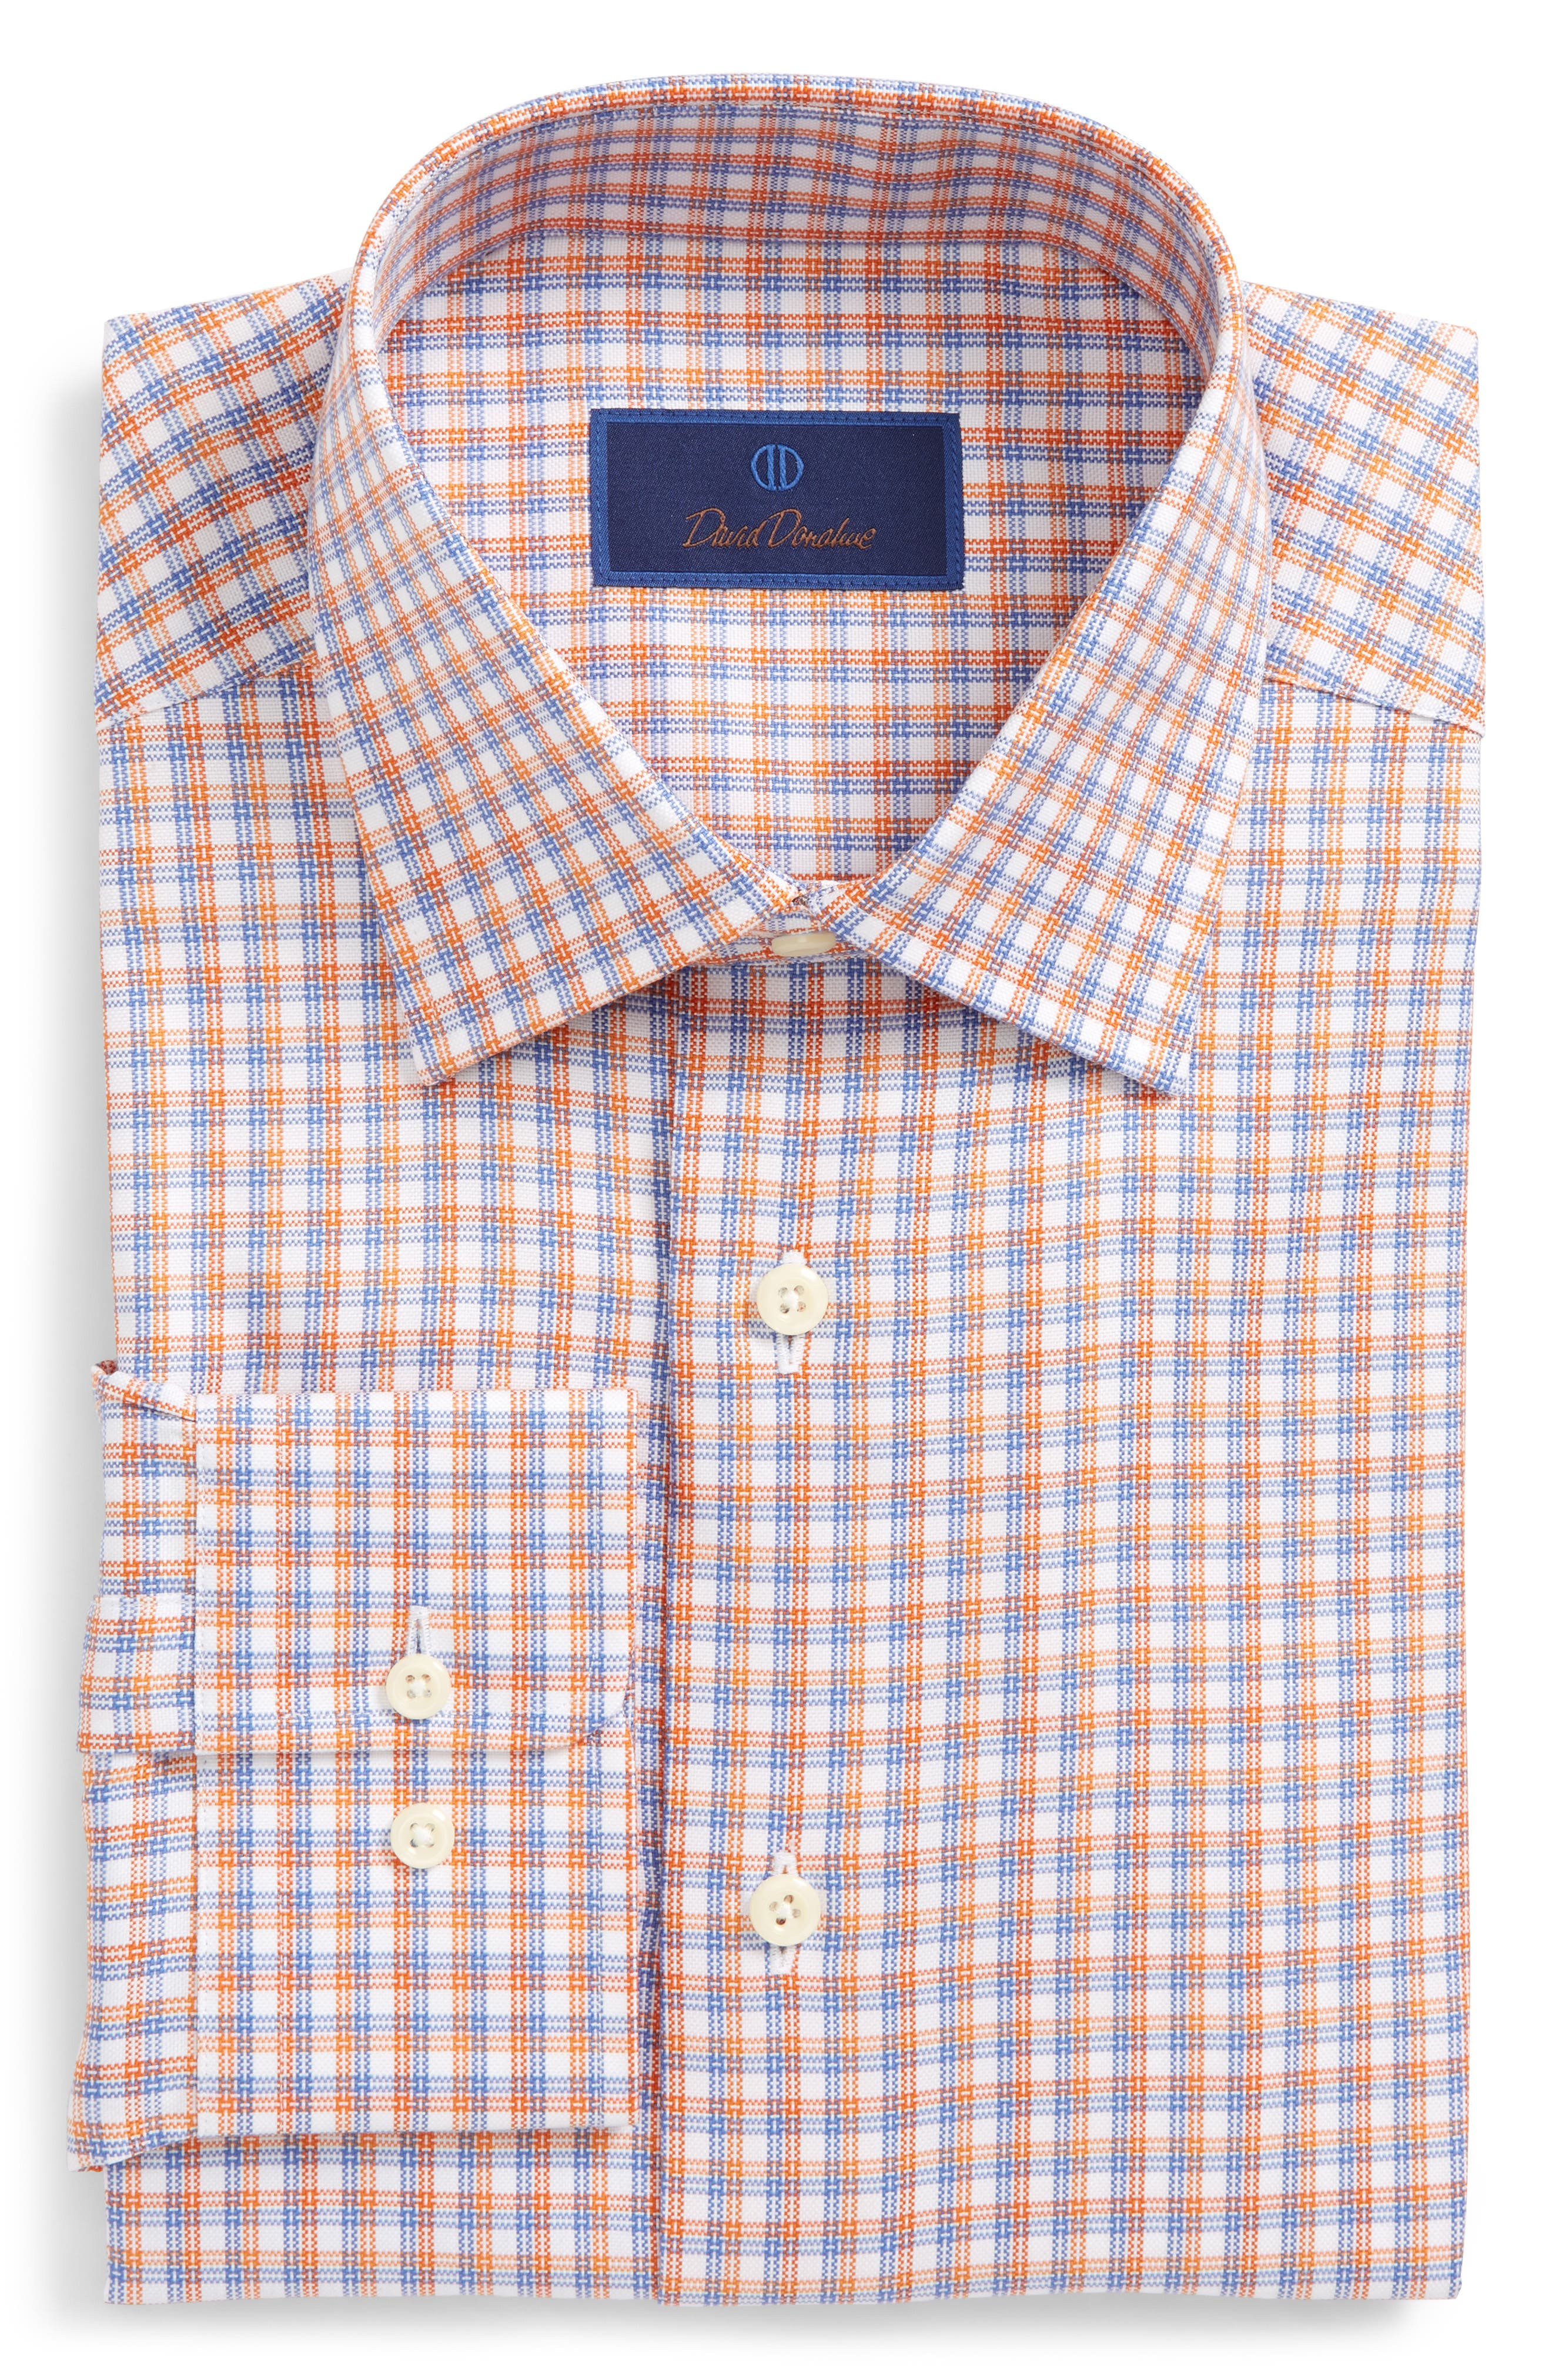 David Donahue Regular Fit Plaid Dress Shirt